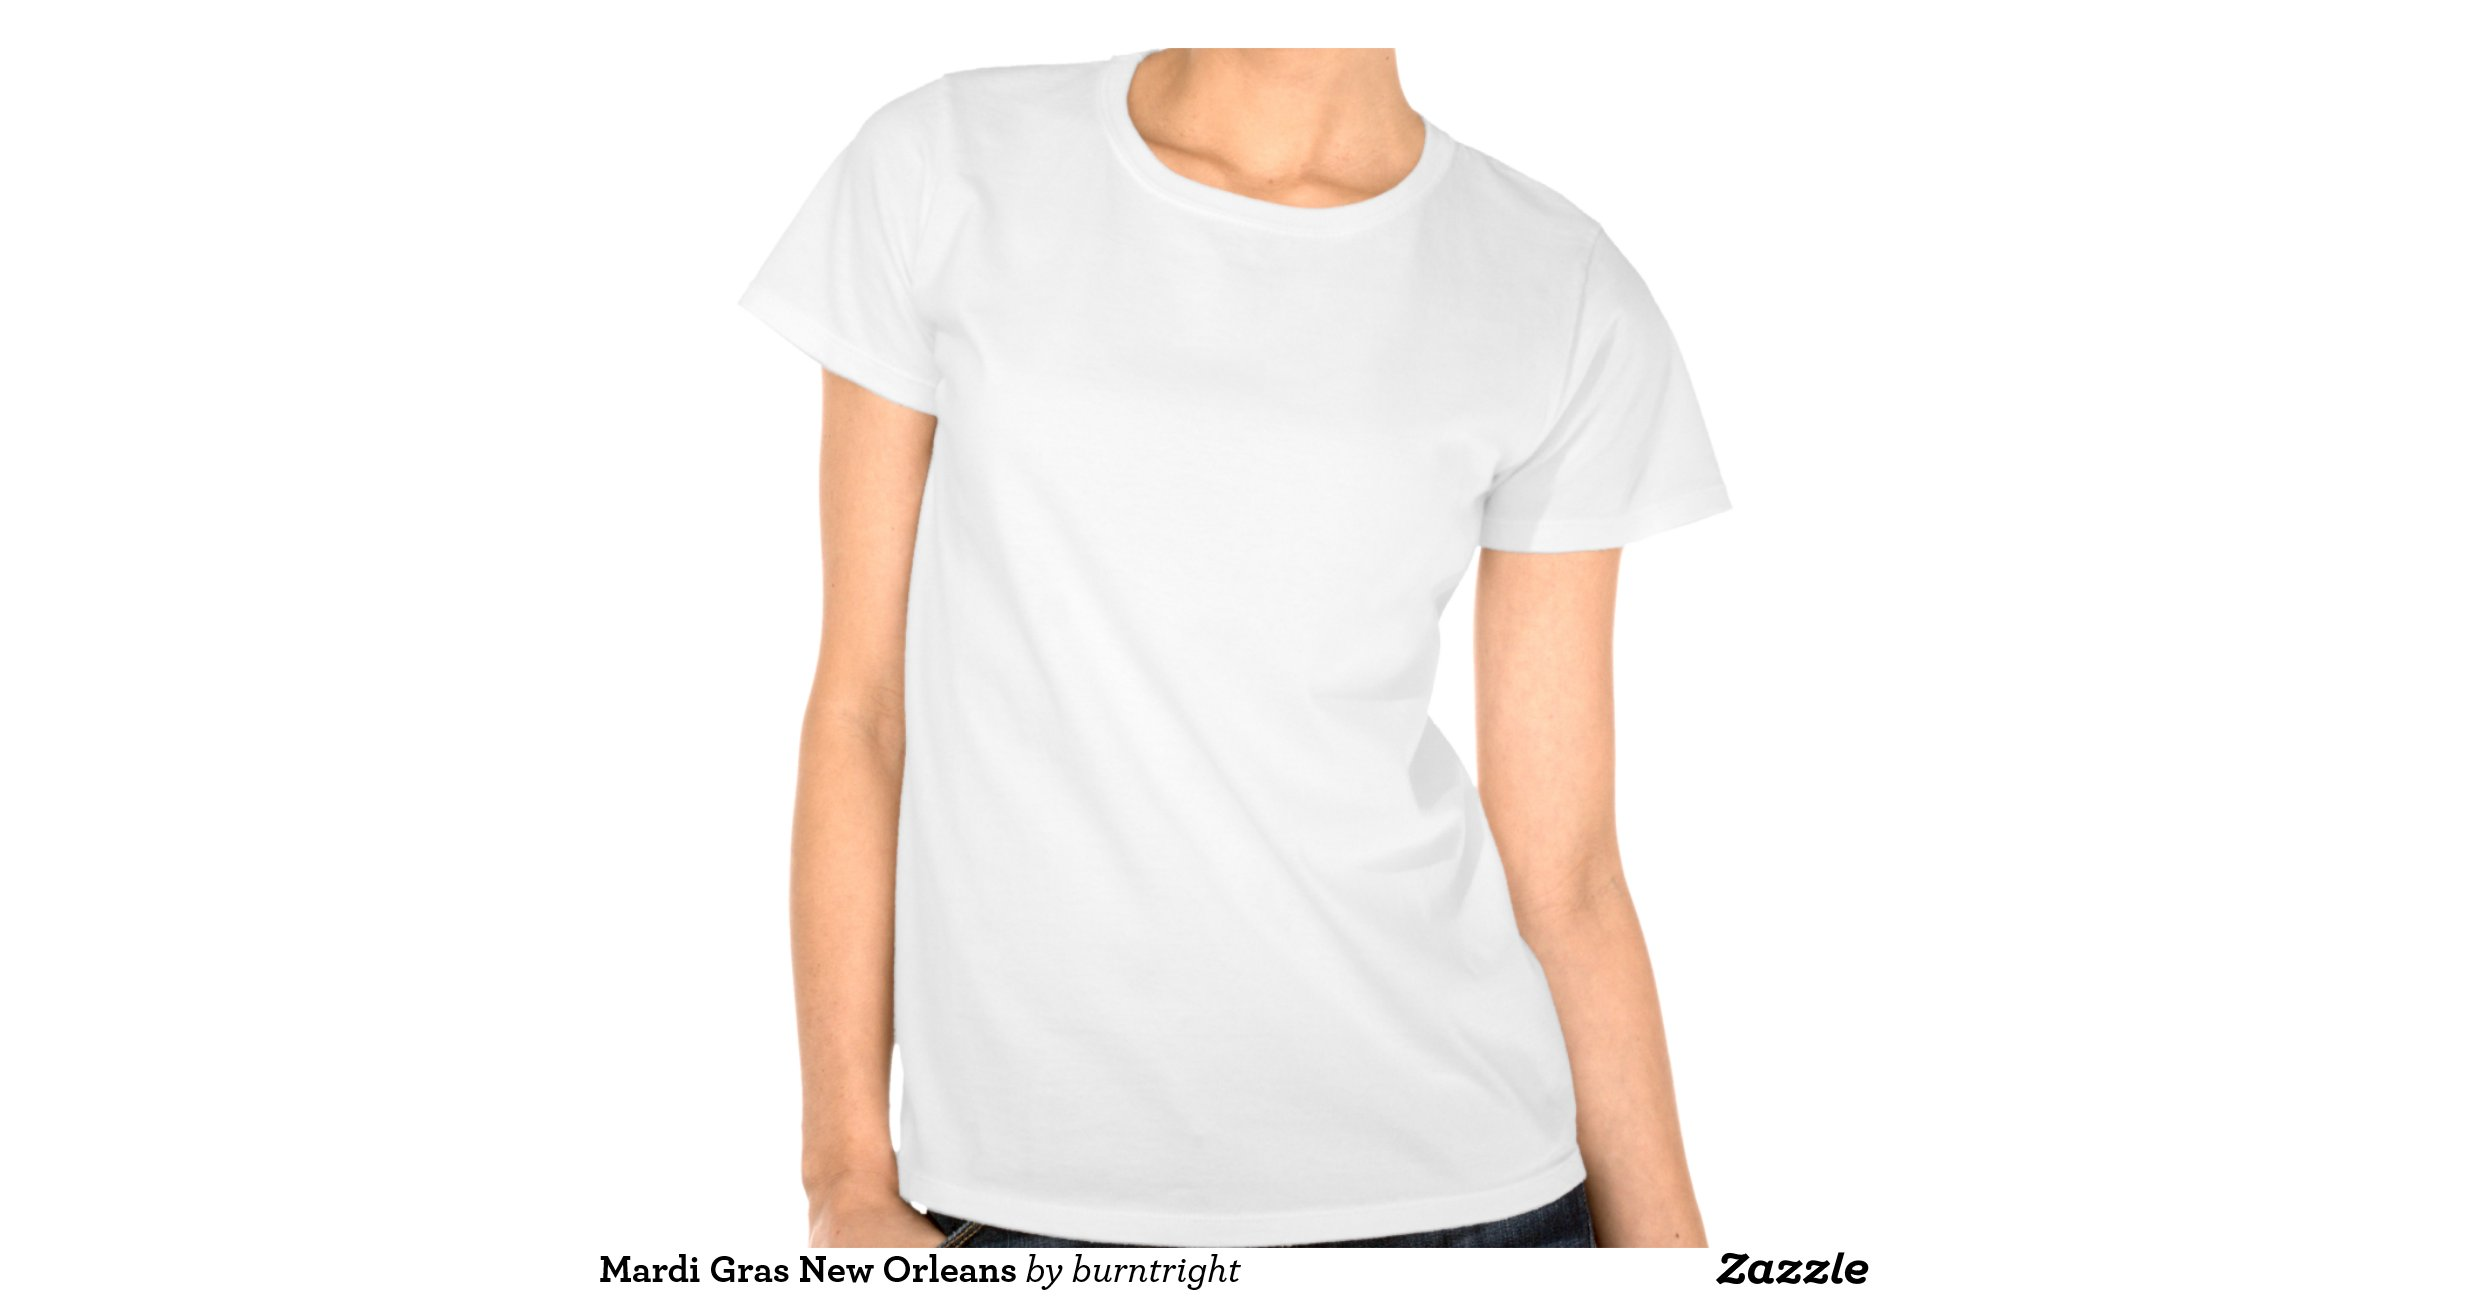 Mardi gras new orleans shirts zazzle for T shirt printing new orleans